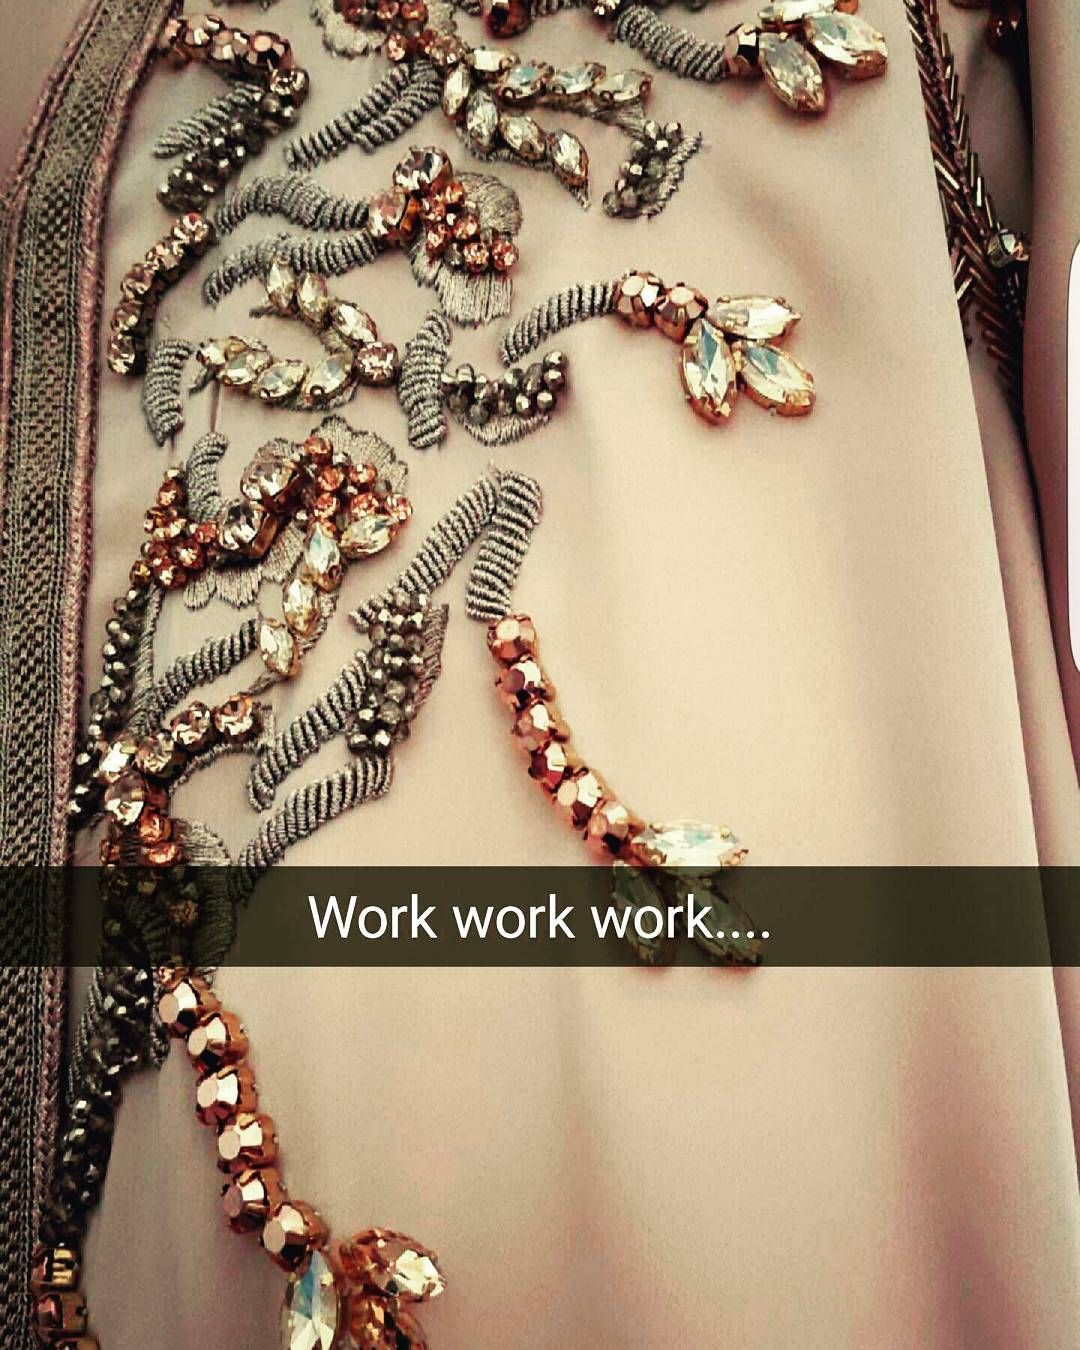 work embroidery handmade bronze rosegold creation details design caftan   fes Morrocco c8ef10c9df1